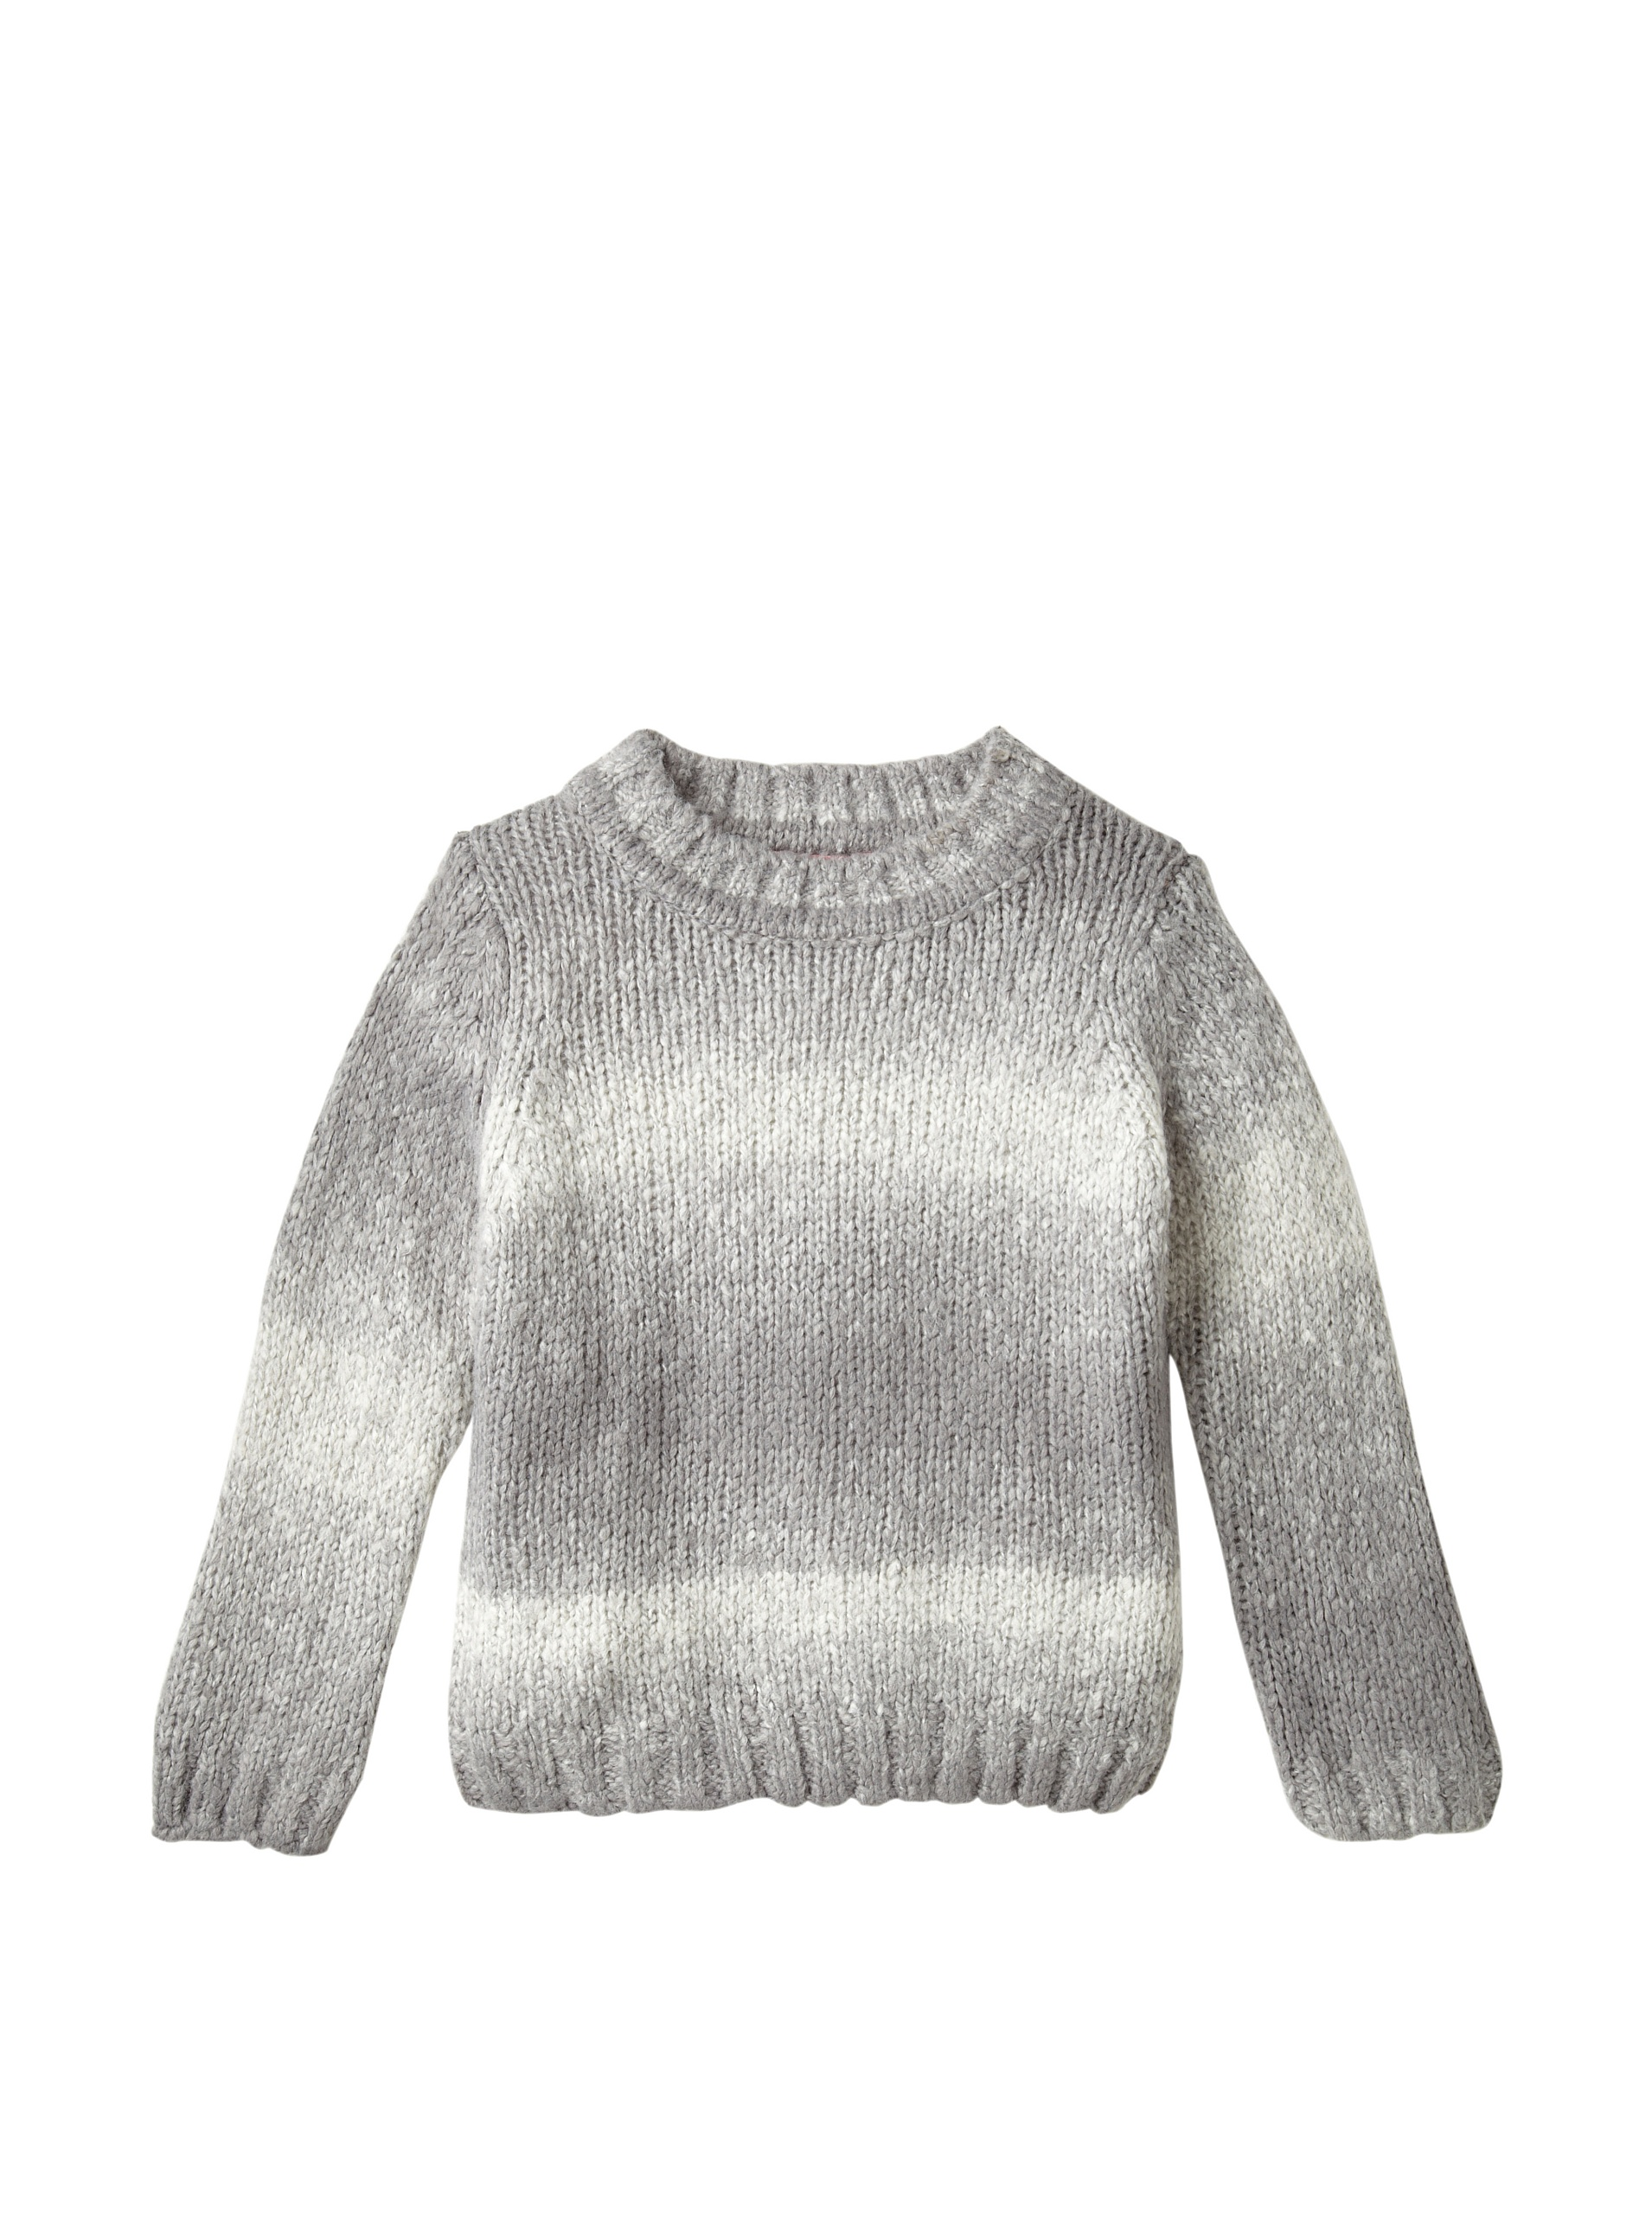 One Kid Boy's Ombre Sweater (Grey)